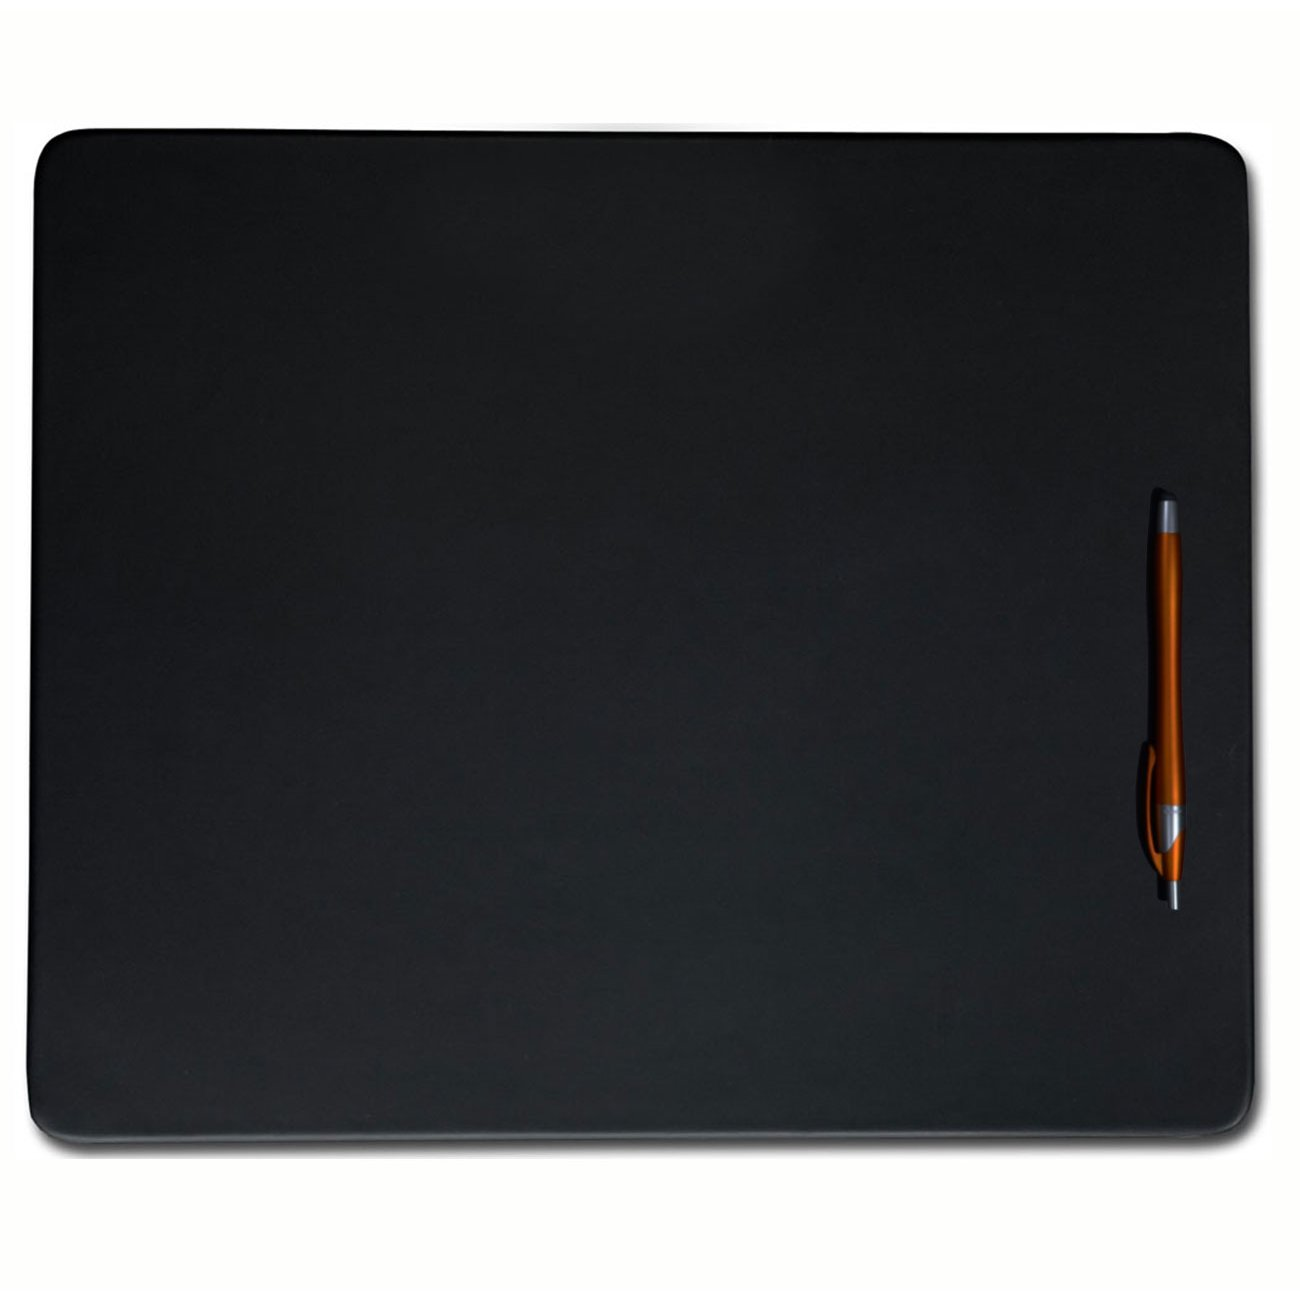 "Synthetic Leather Placemats - 20"" x 16"", Black"